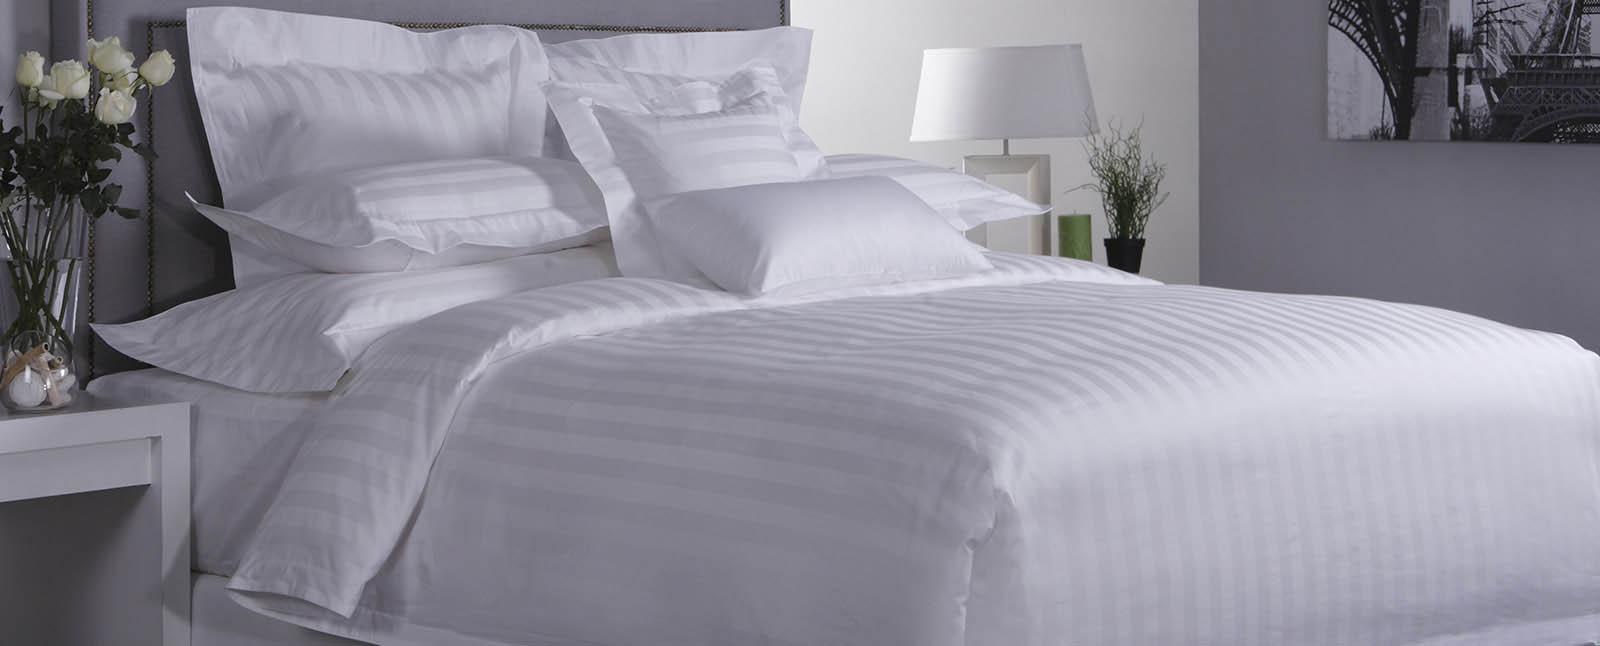 Duvet Covers & Bed Sheets